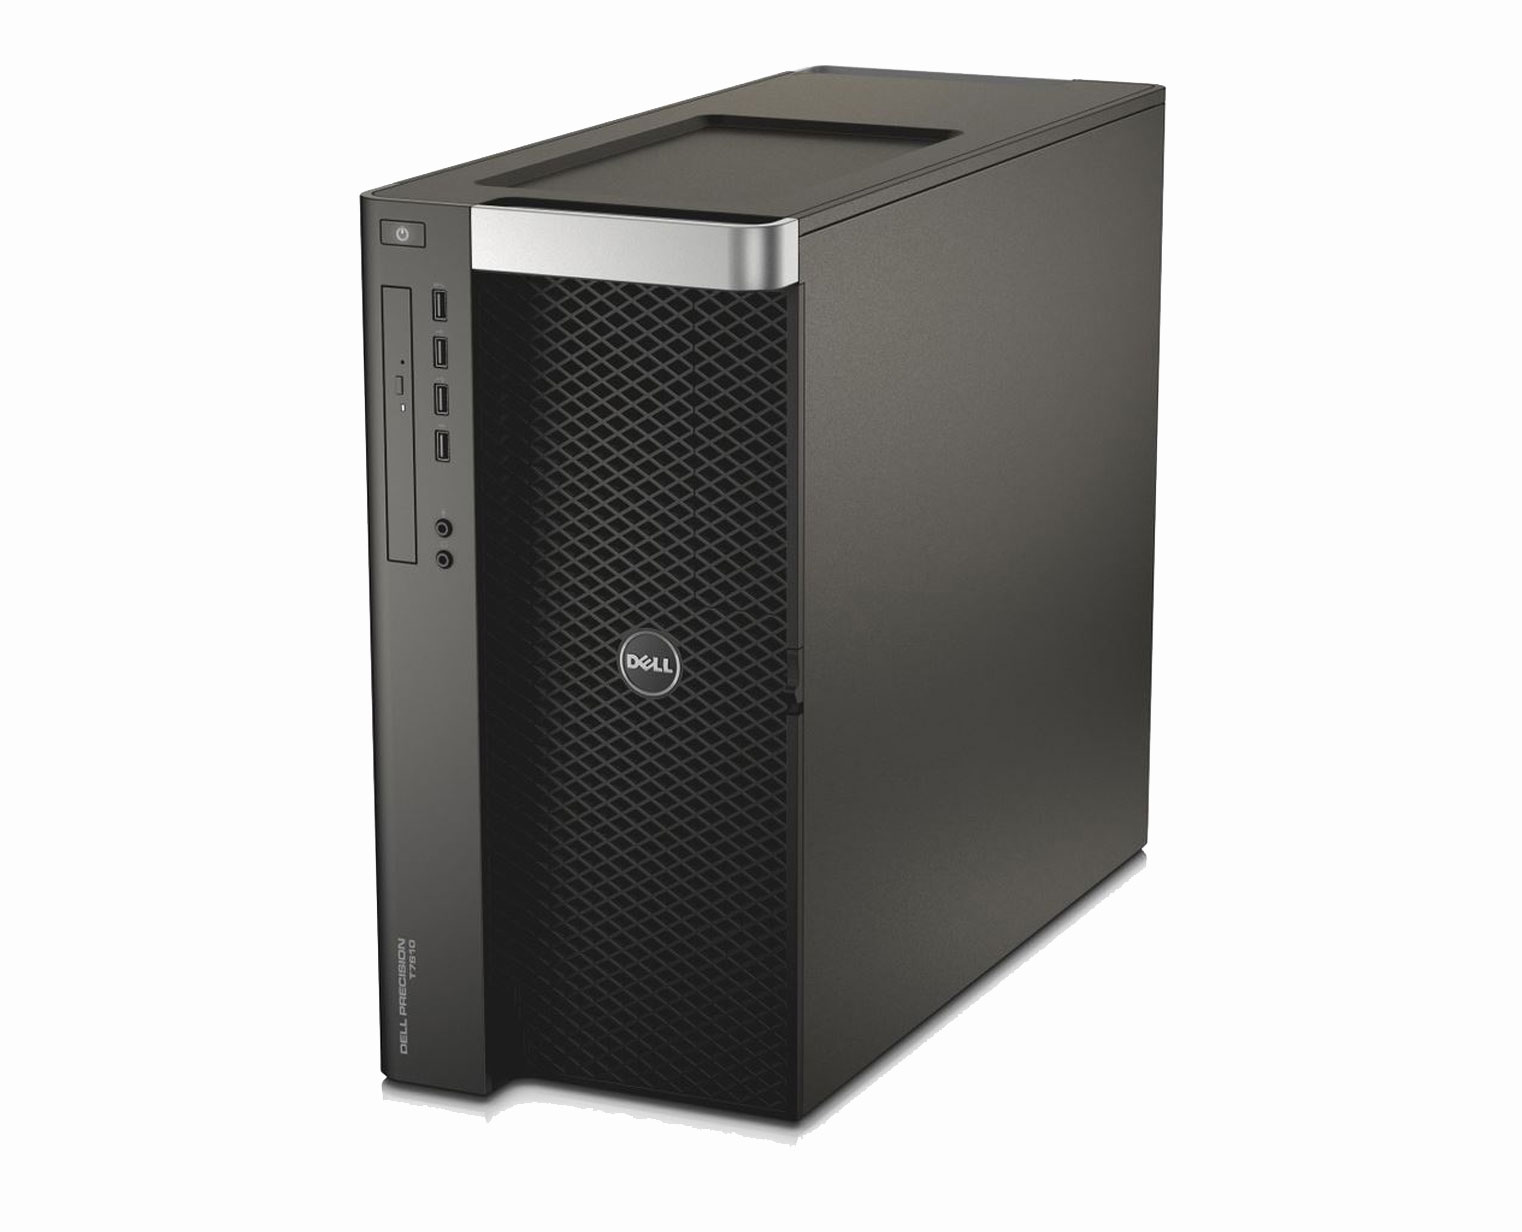 Maximum Performance - Dell Precision Tower 7000 Series